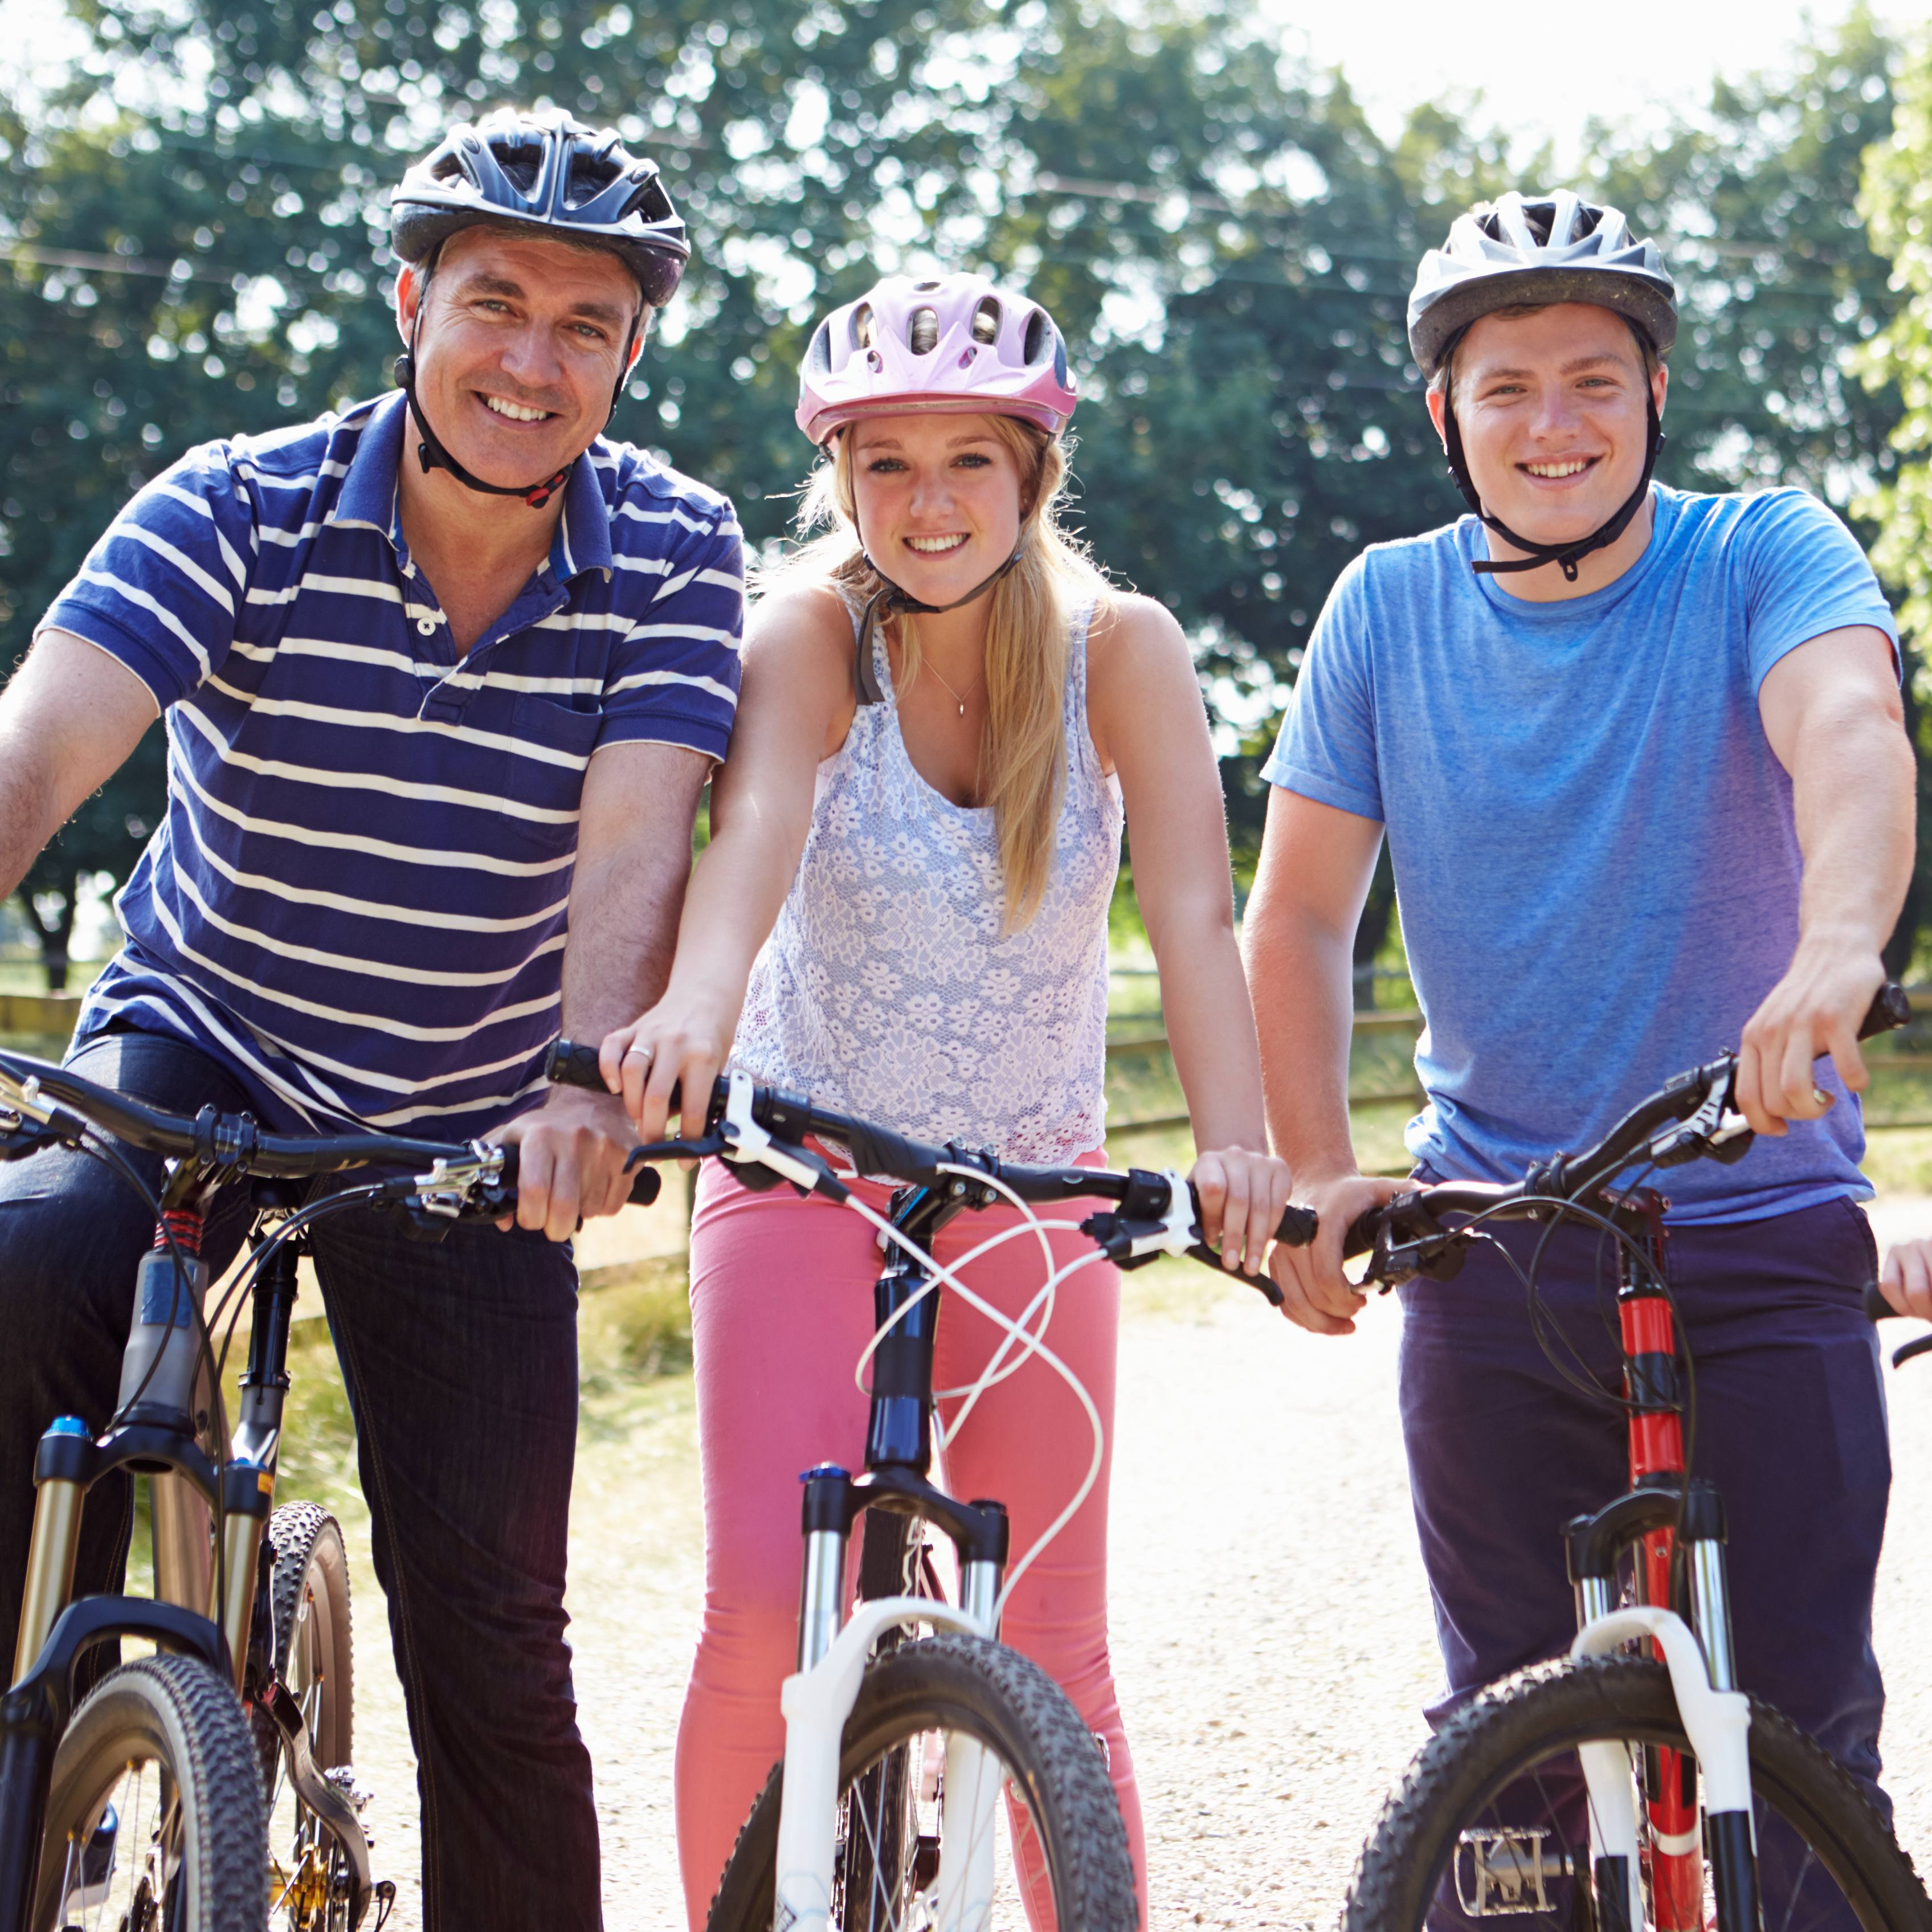 a family on bicycles - father and teenage daughter and son